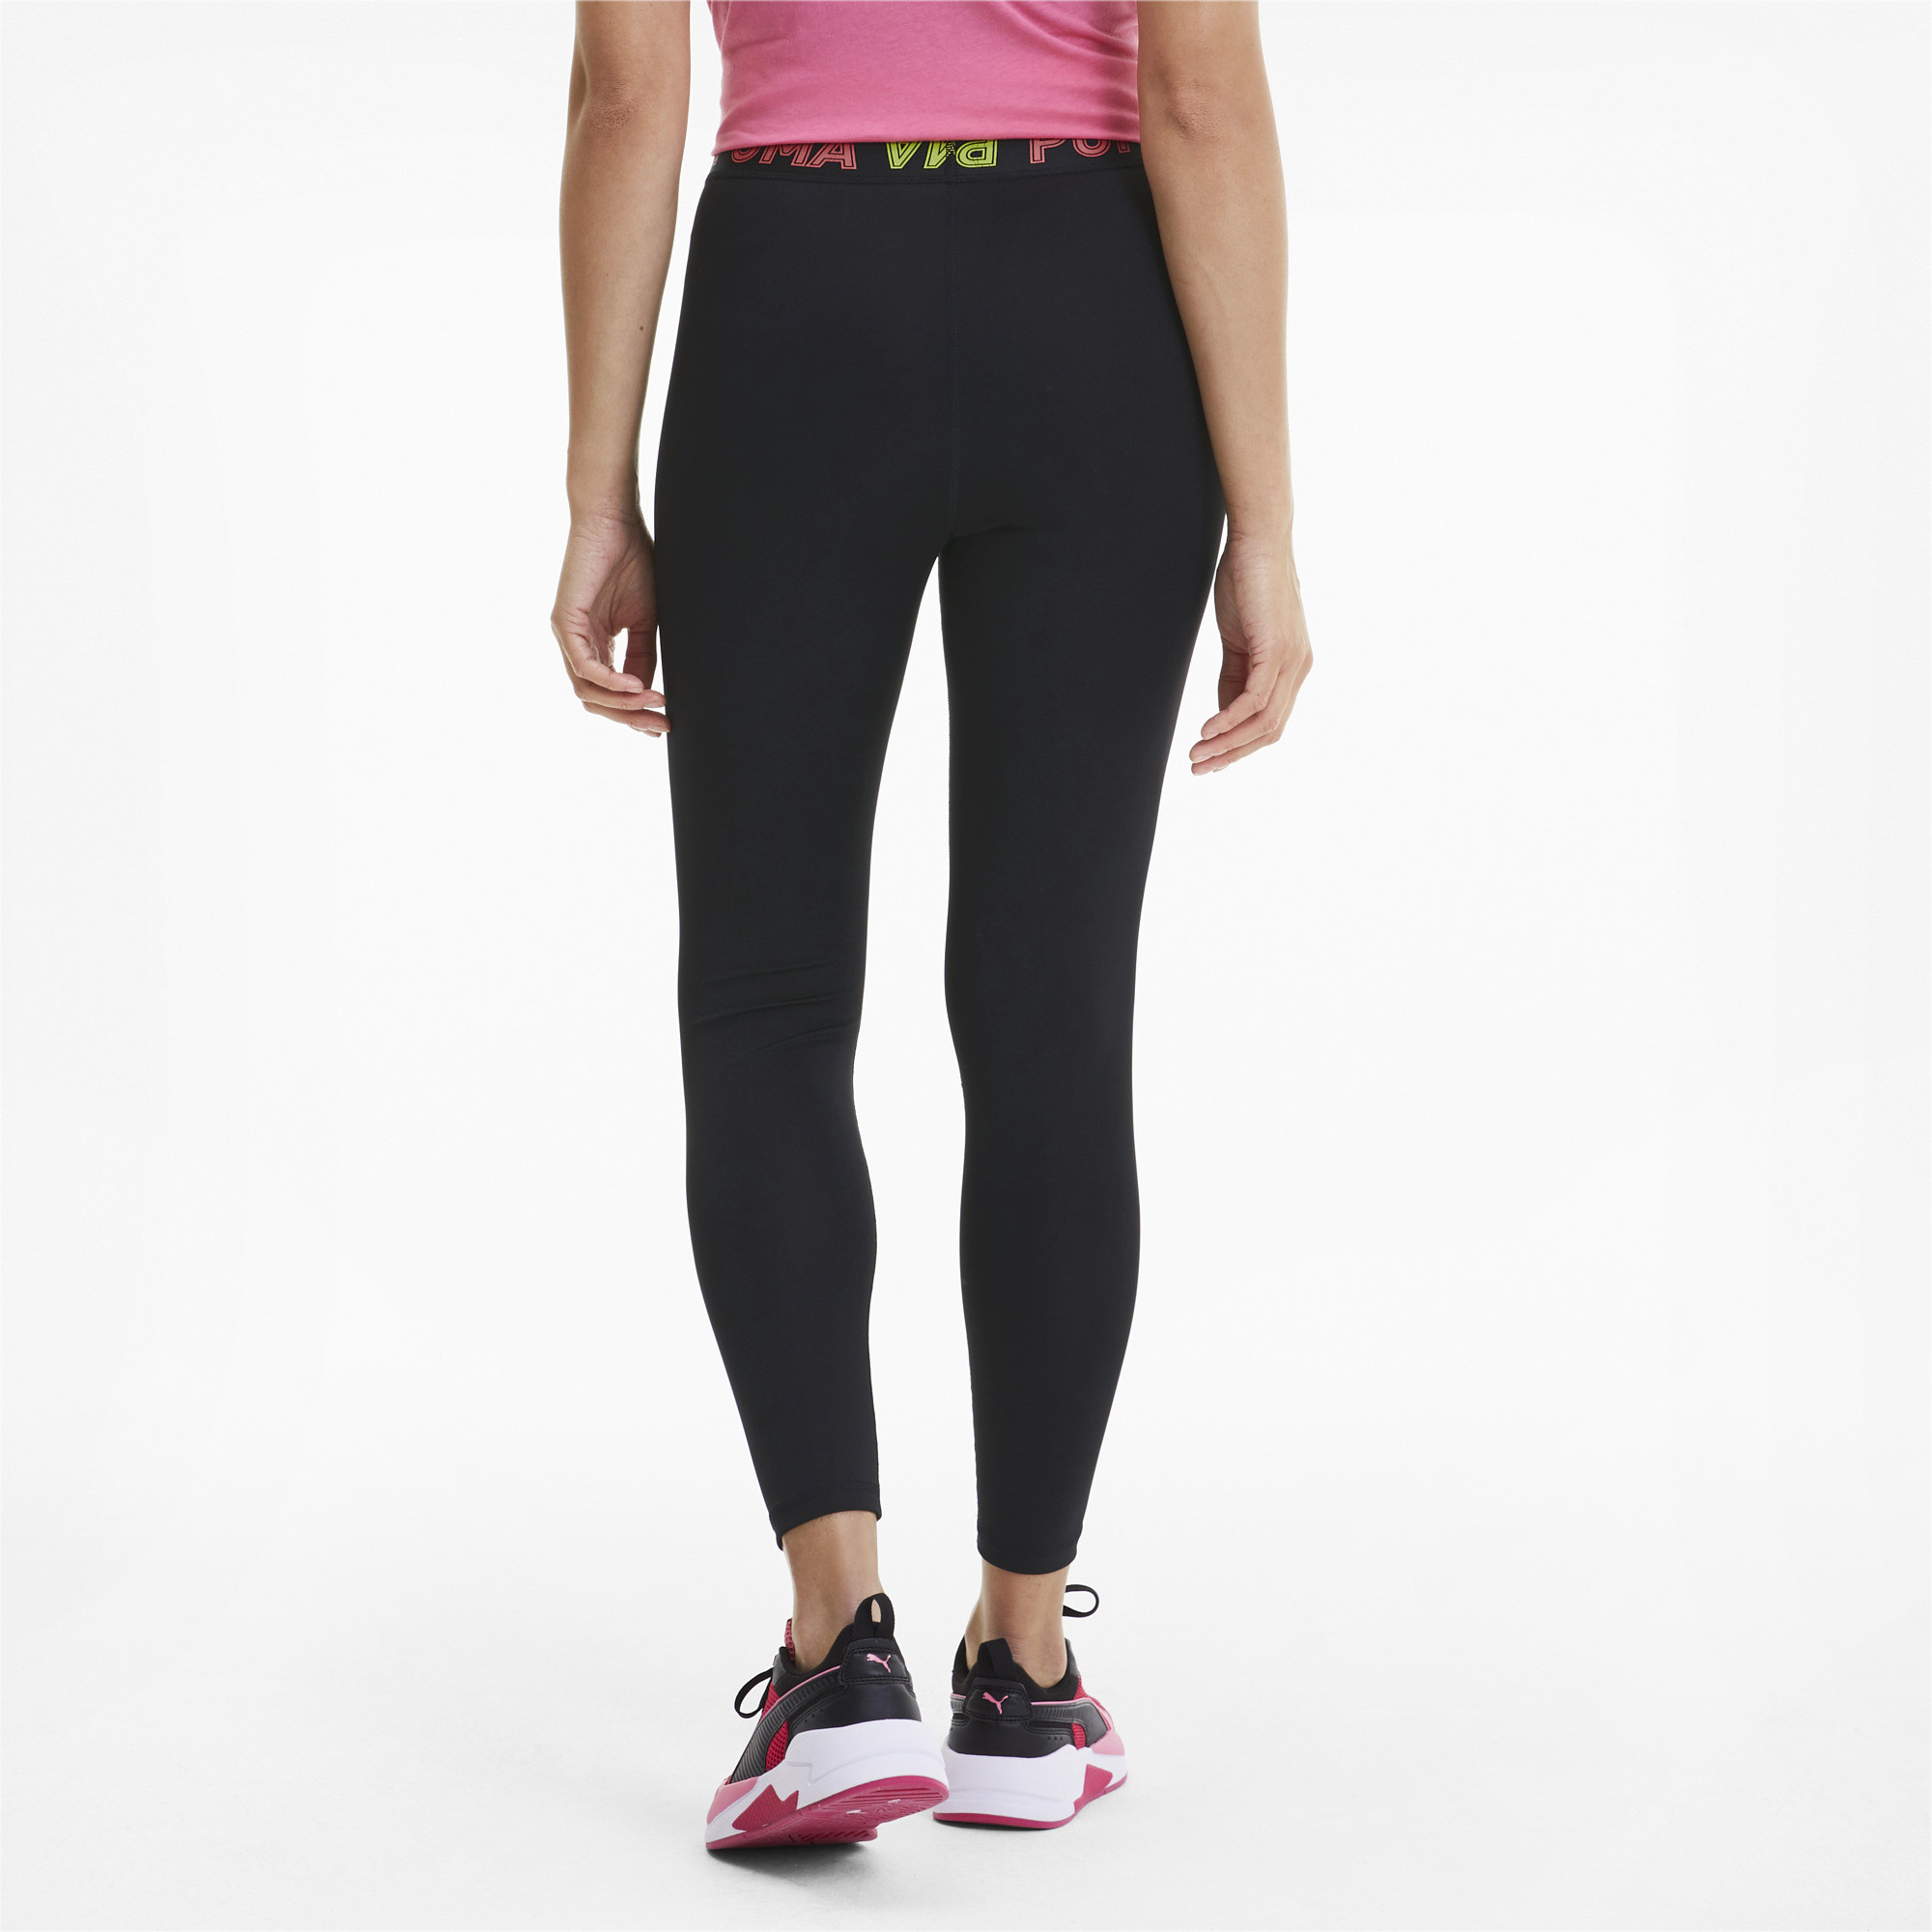 PUMA-Modern-Sports-Women-039-s-Band-Leggings-Women-Basics thumbnail 5